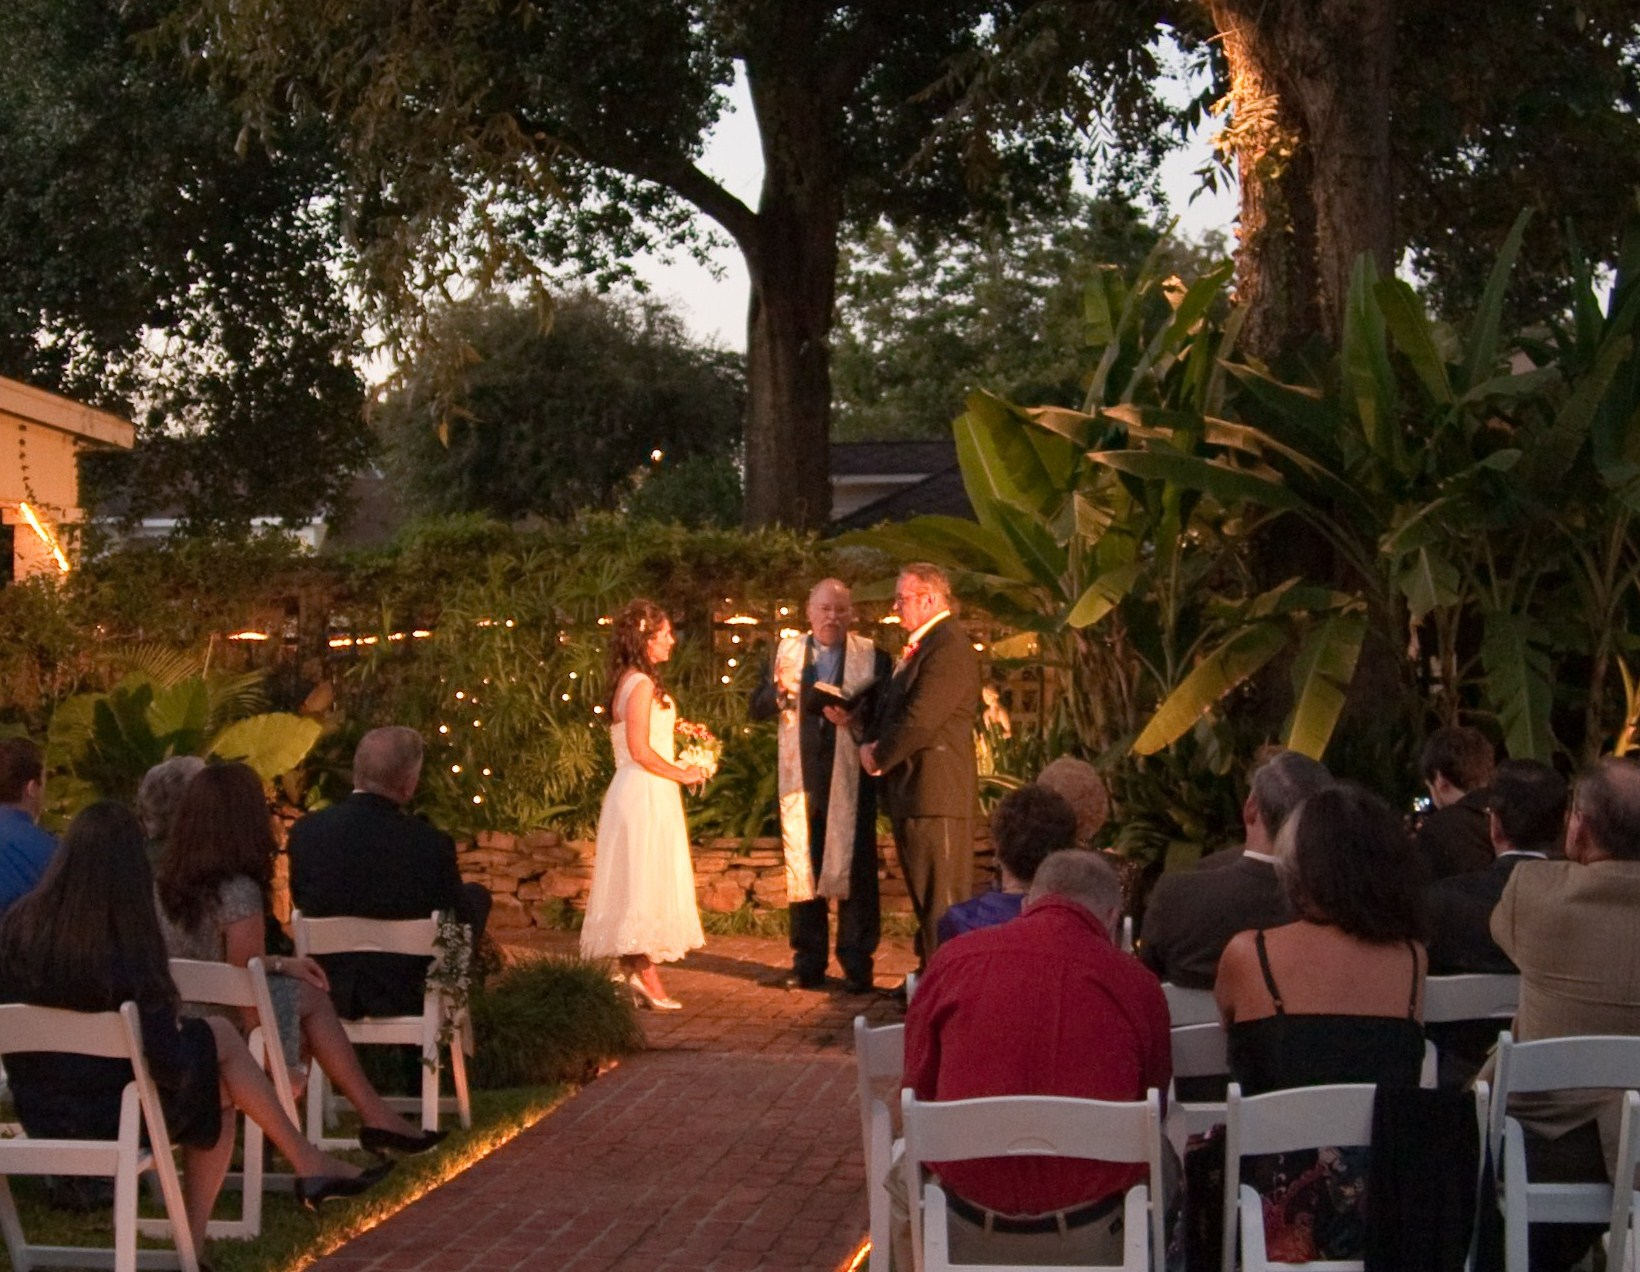 Choosing A Venue For Your Wedding And Reception